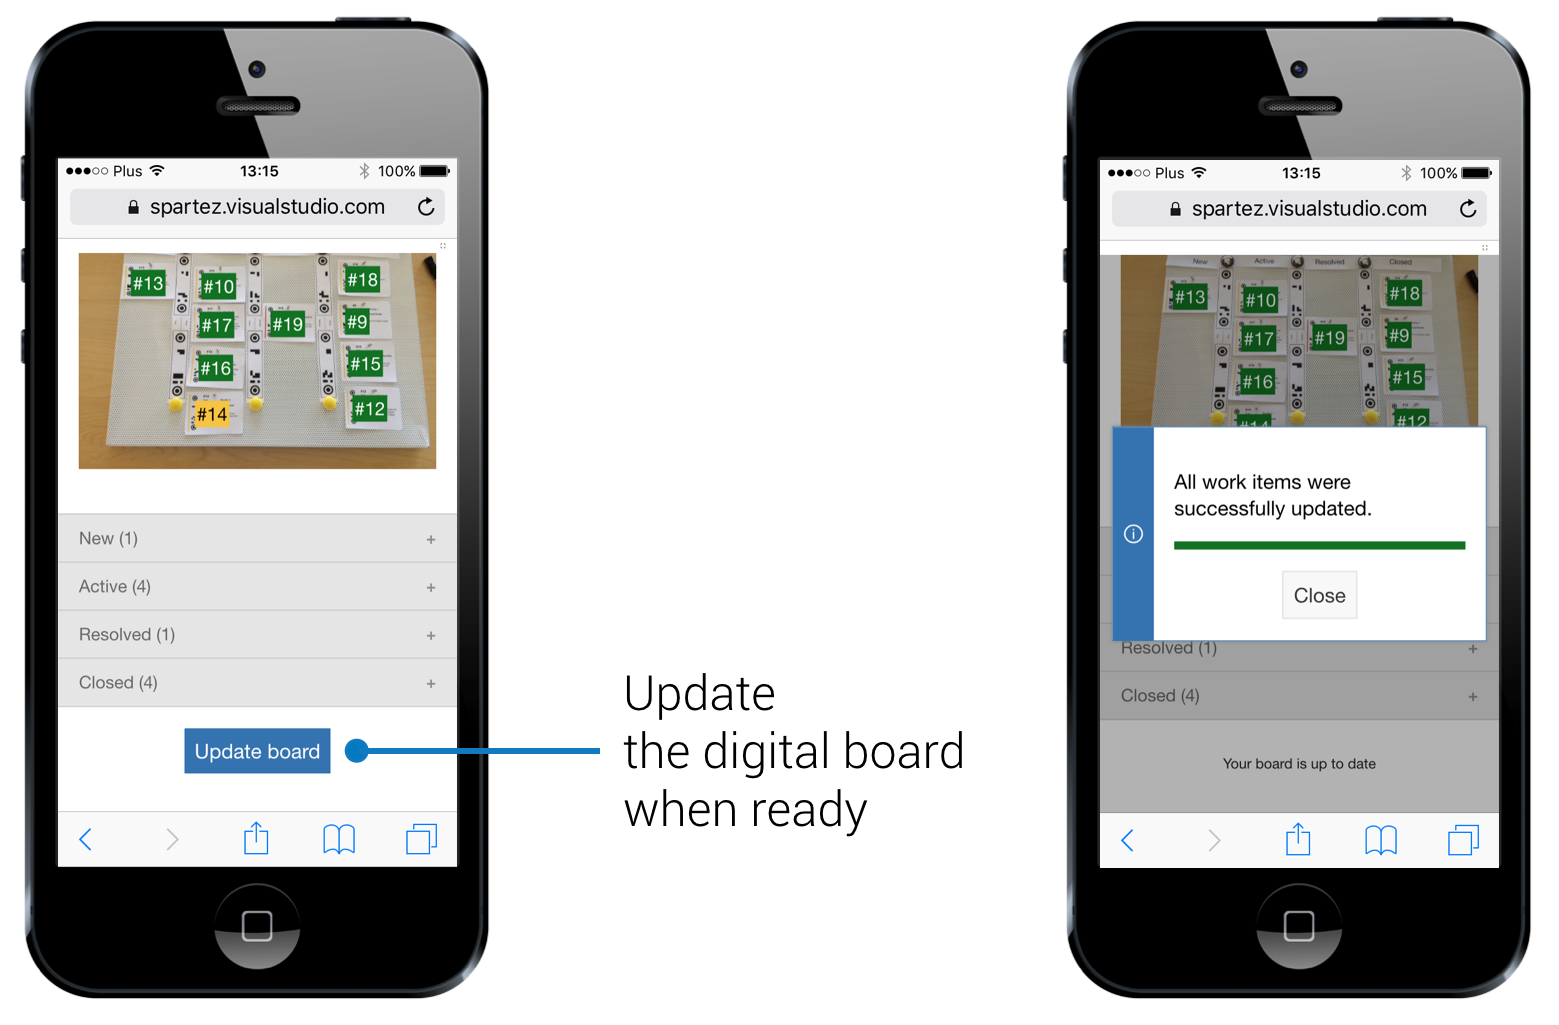 Scanning the board using a mobile device